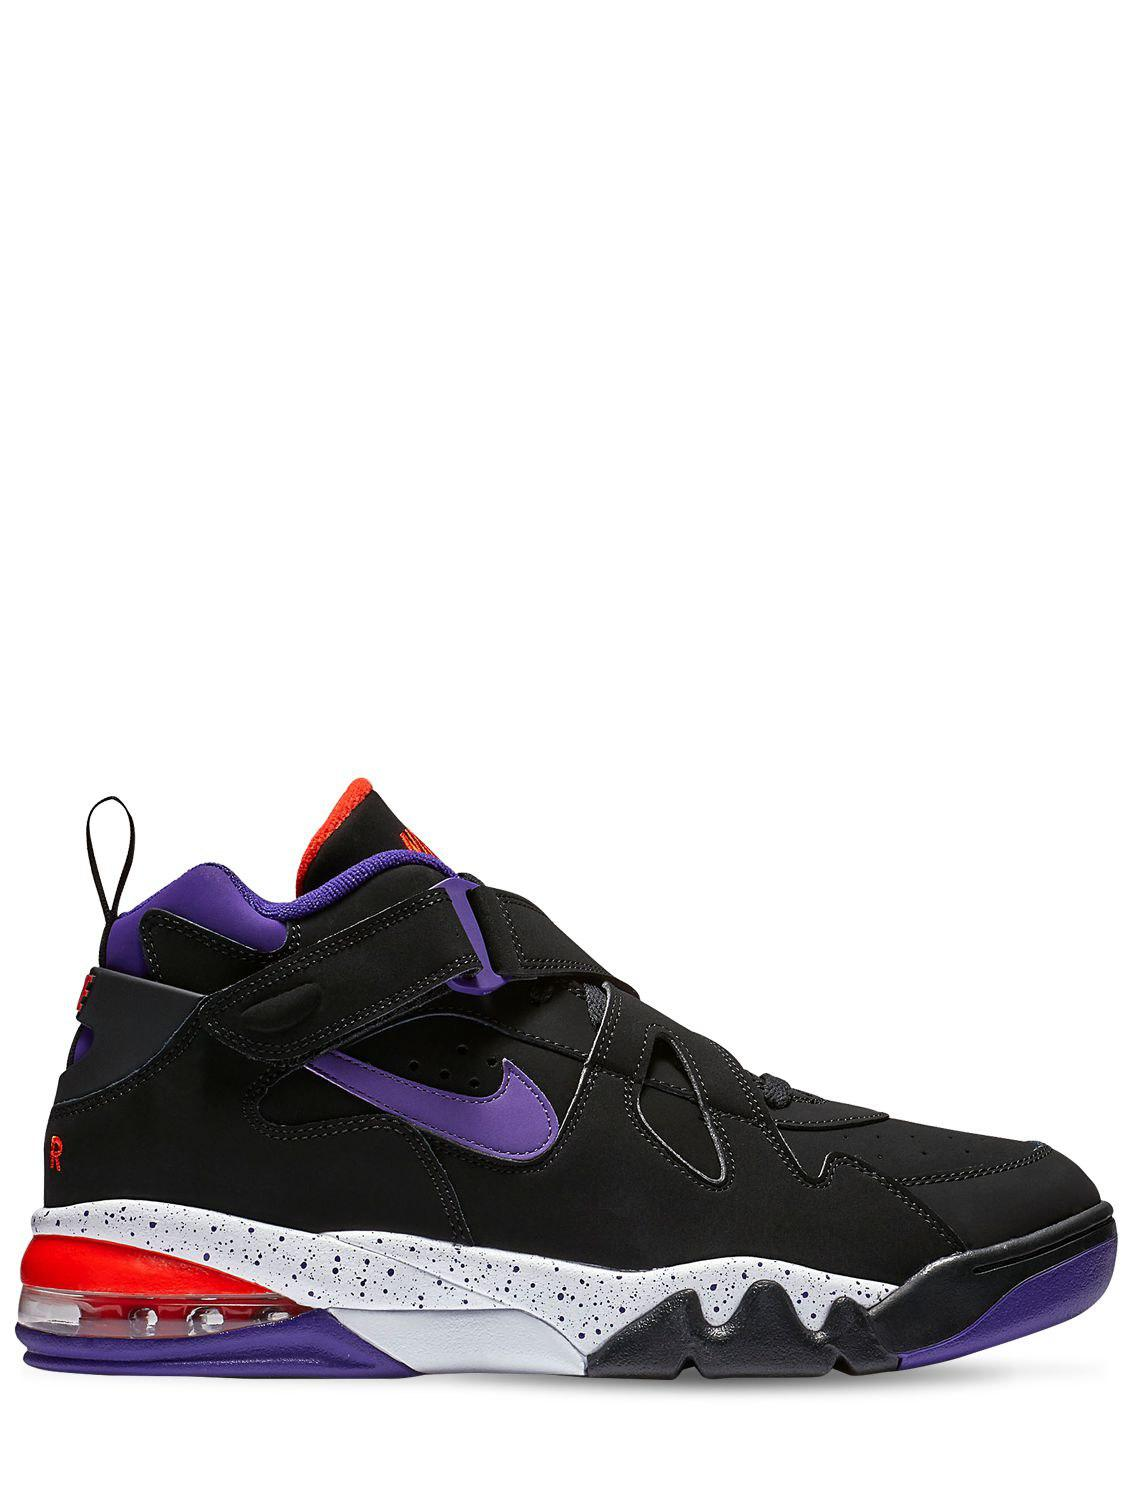 04f496aaa6ba Lyst - Nike Air Force Max Cb Sneakers in Black for Men - Save 38%